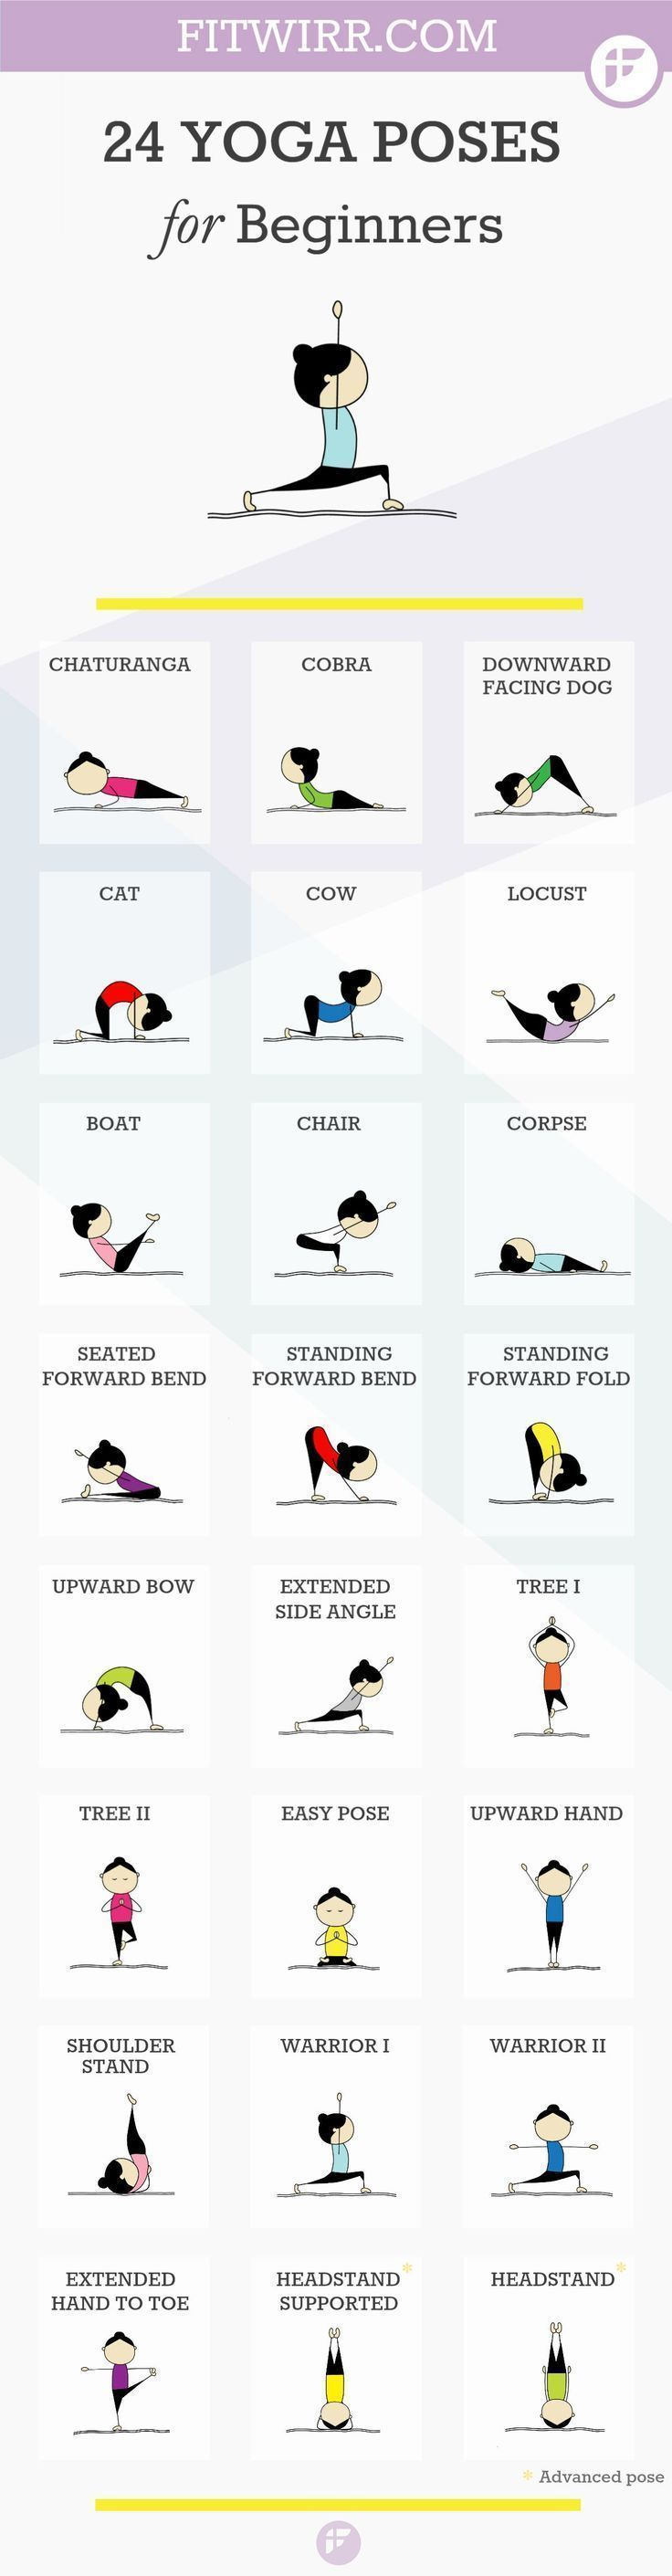 24 Yoga poses for beginners. Namaste :-). #yoga #meditation #health                                                                                                                                                                                 More